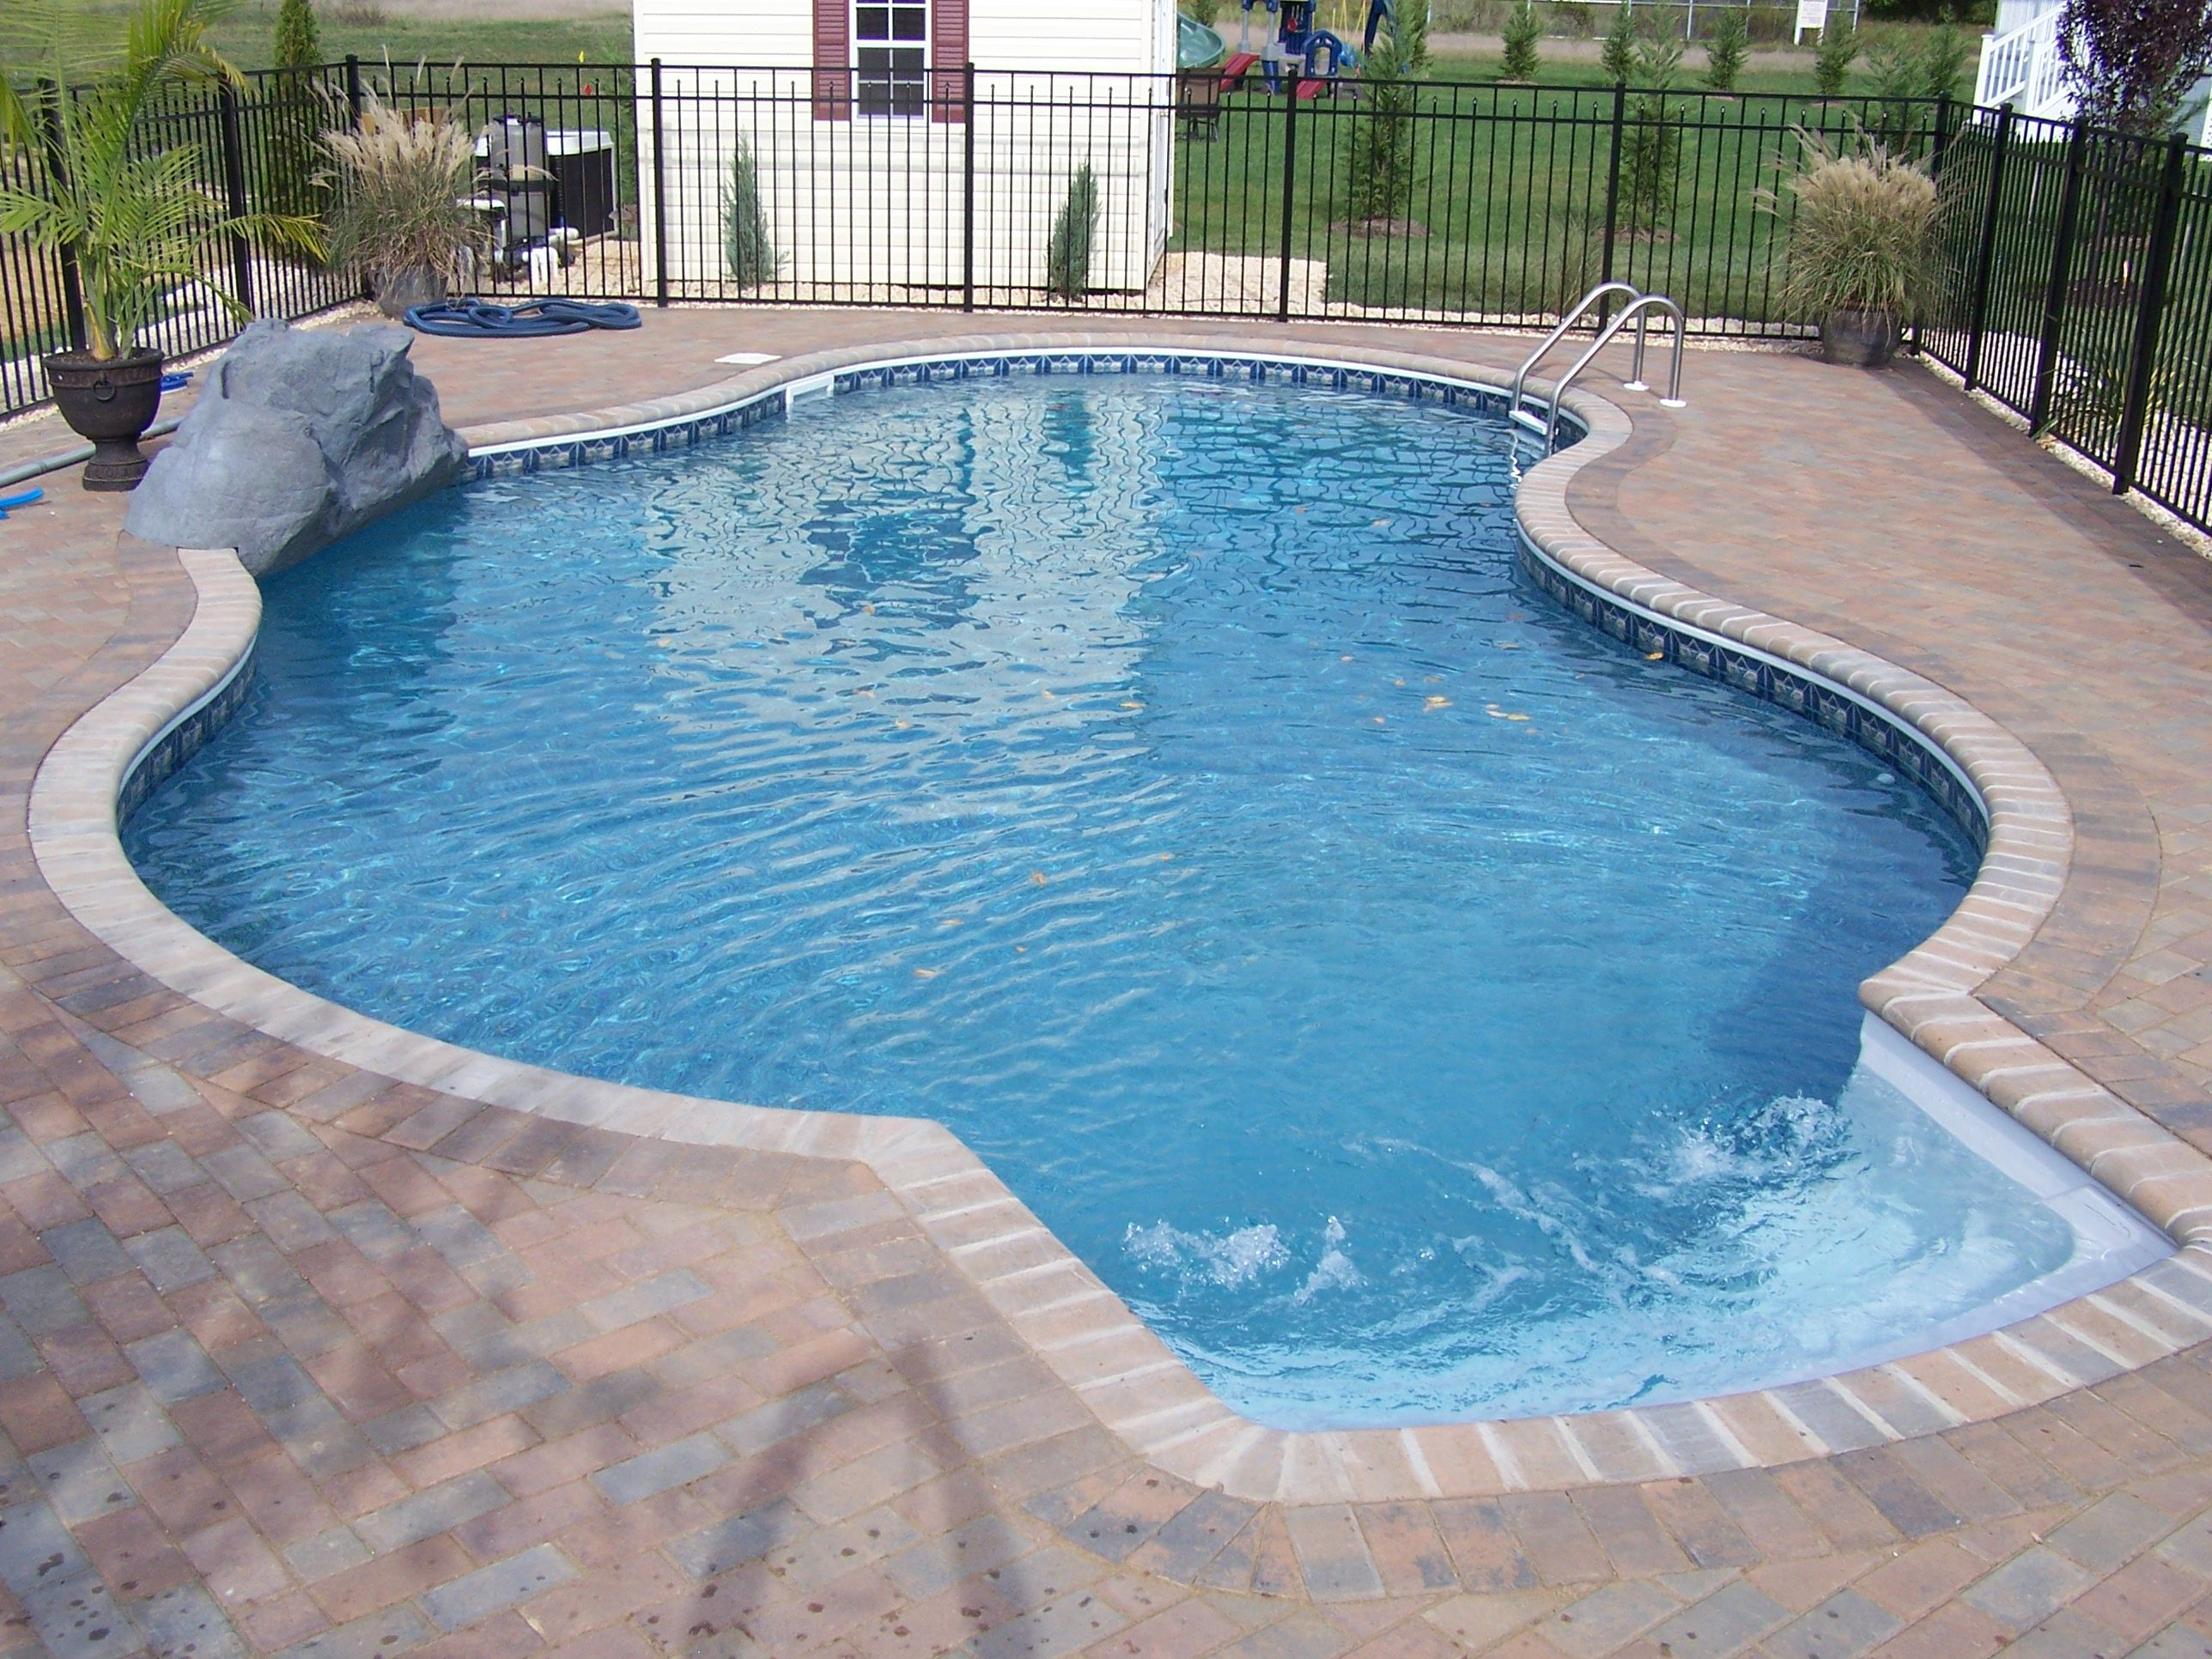 Freeform with brick coping paver patio waterfall and aluminum fence our beautiful swimming for Painting aluminum swimming pool coping